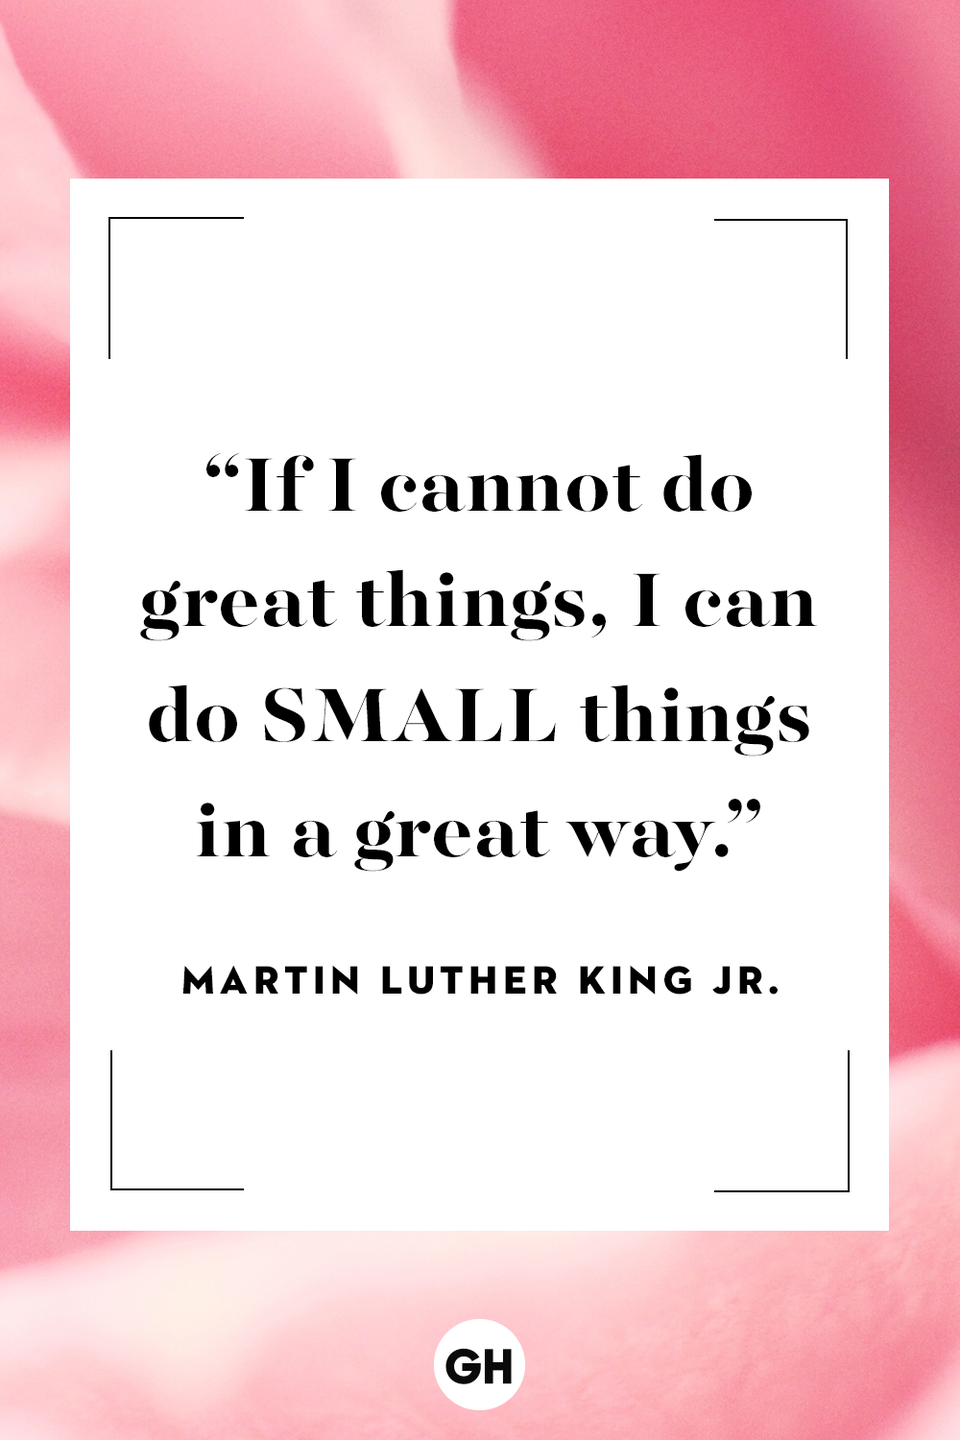 <p>If I cannot do great things, I can do small things in a great way.</p>